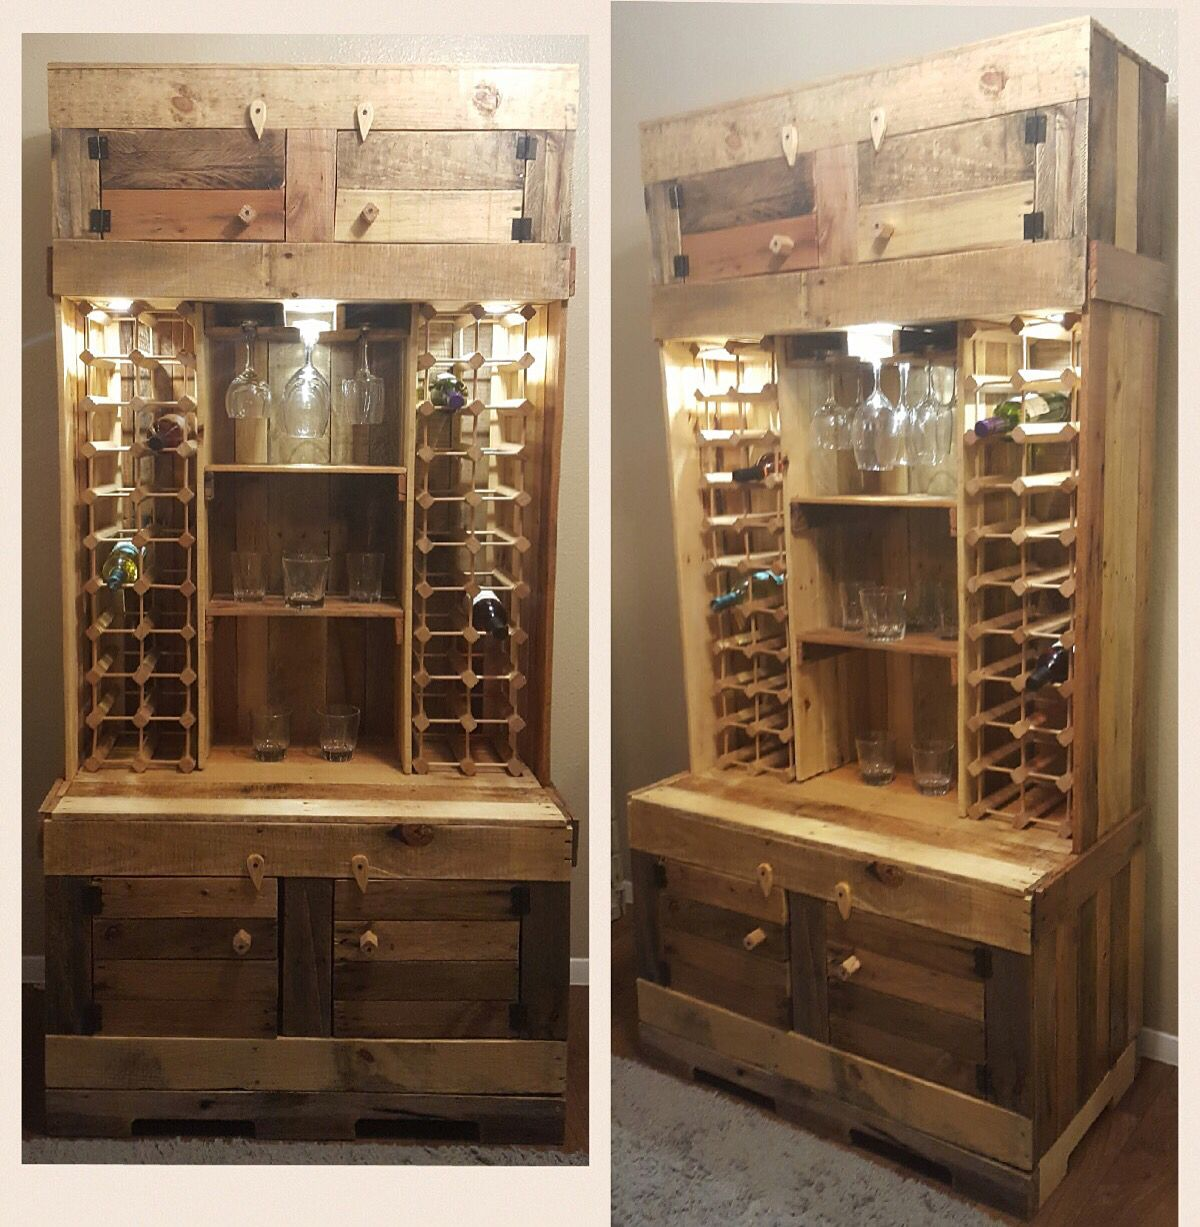 Diy Rustic Wine And Liquor Cabinet With Recessed Lighting Handcrafted From Pallet W Pallet Furniture Restaurant Diy Deck Furniture Diy Outdoor Furniture Plans